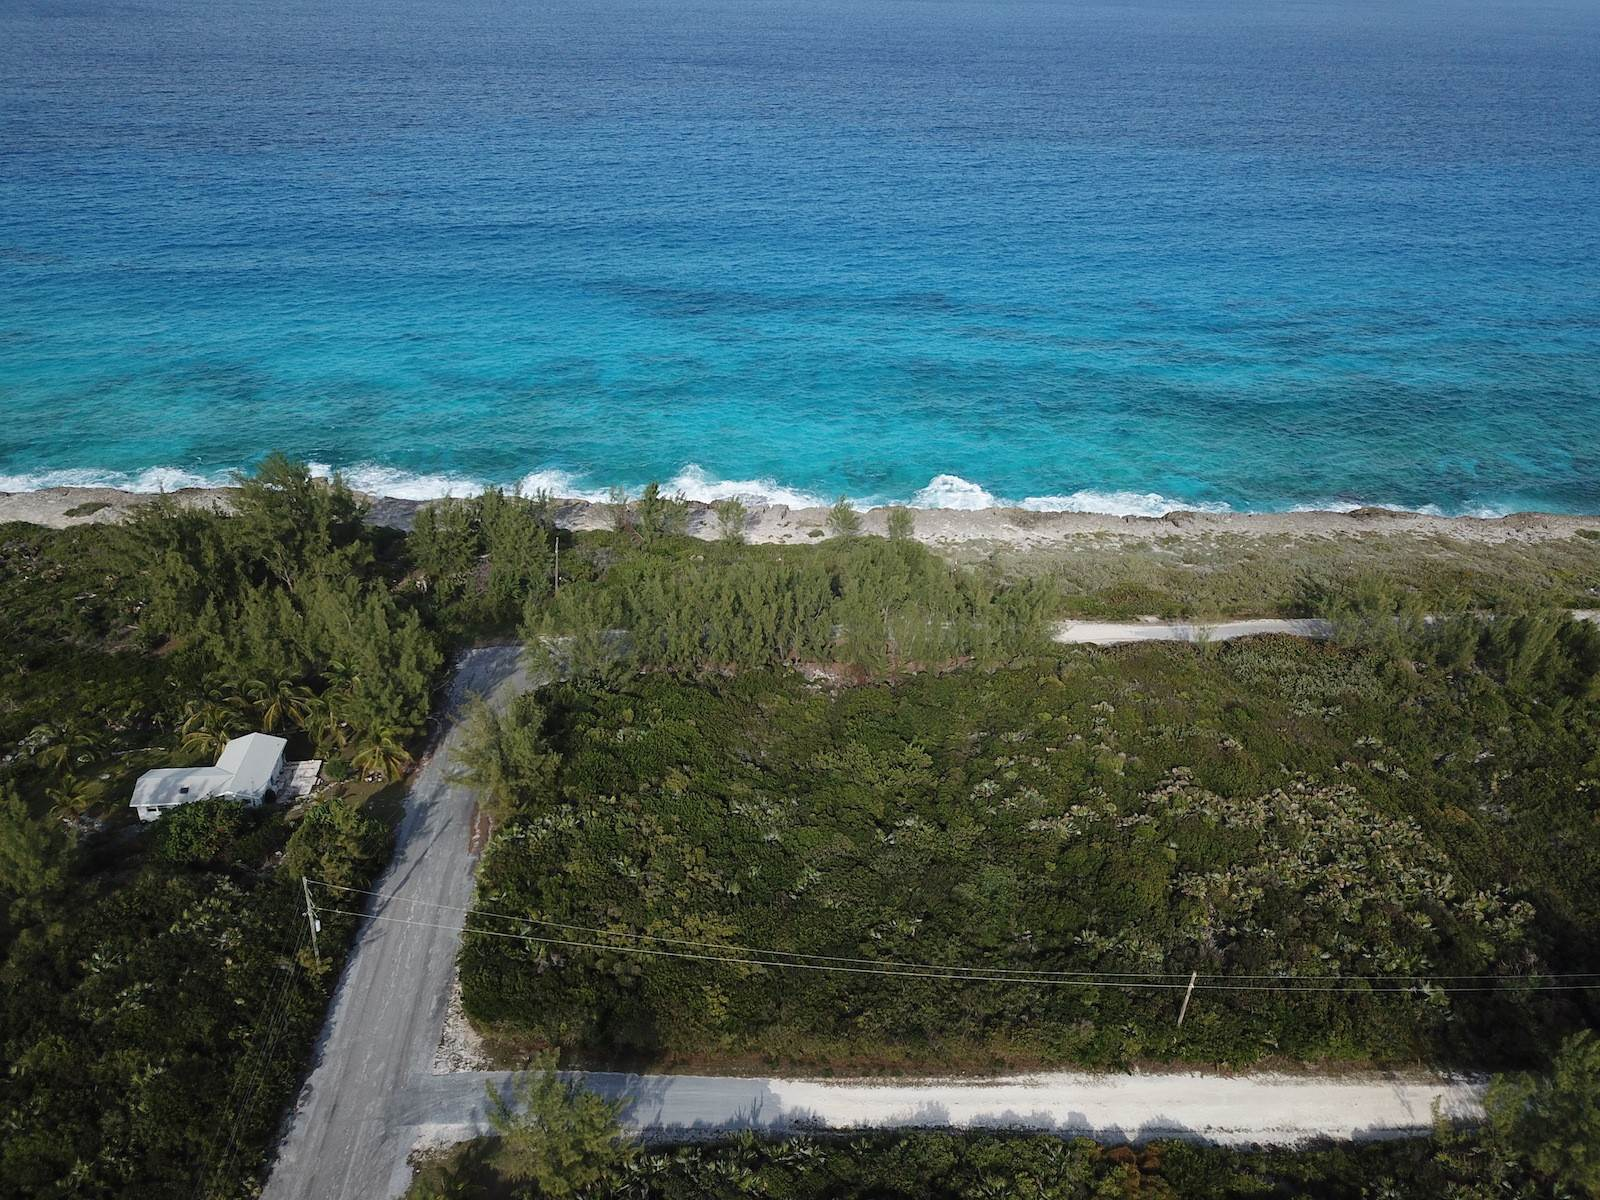 Land for Sale at Great Rainbow Bay Lot, Section A, Block 6, Lot 3 - MLS 39763 Rainbow Bay, Eleuthera, Bahamas